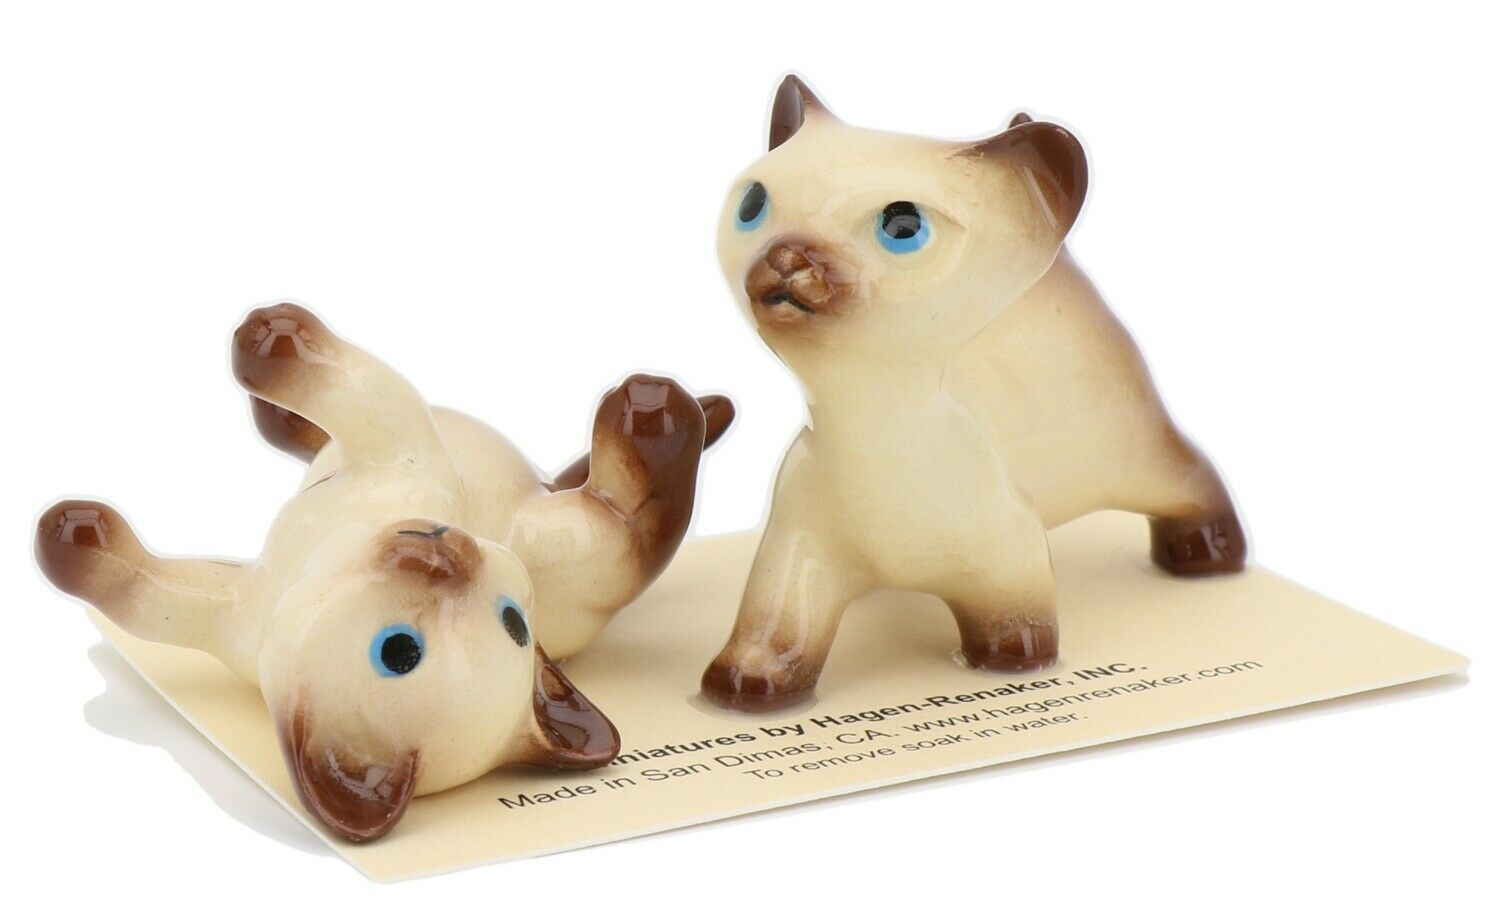 Hagen Renaker Specialty Cat Siamese Kittens - 2 Piece Ceramic Figurine Set